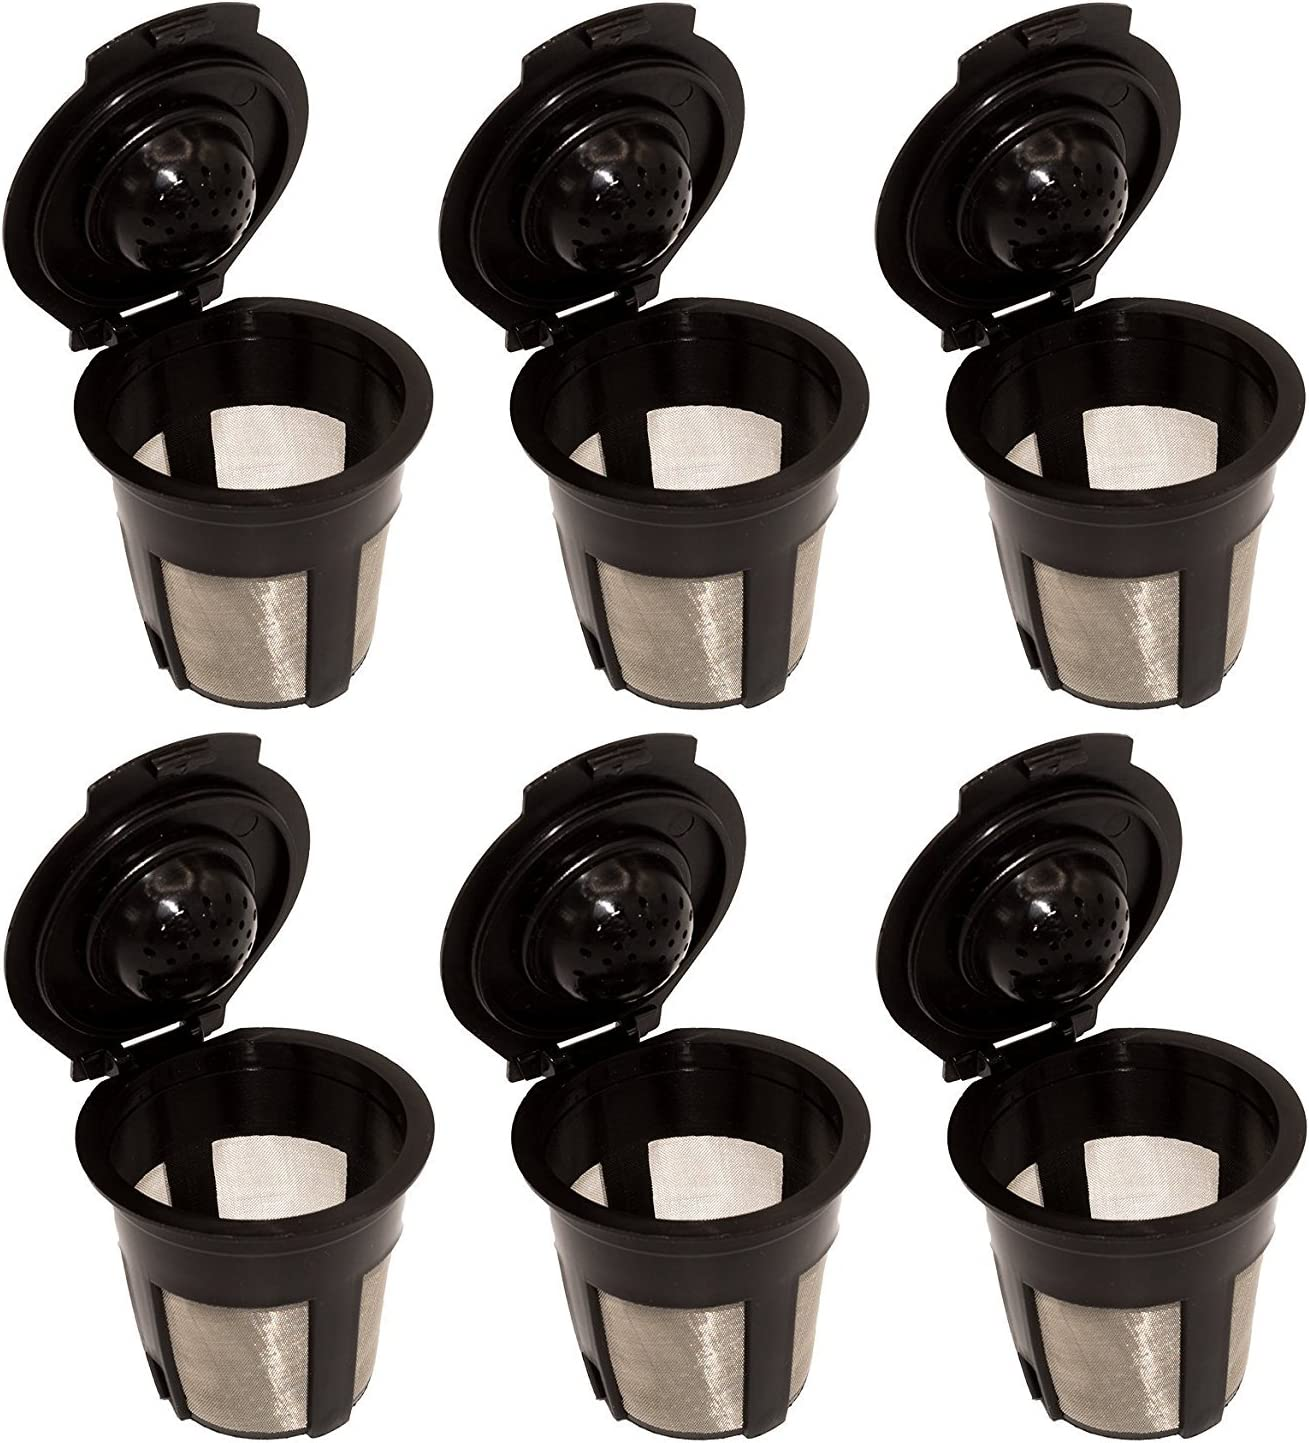 CDFD 6PCS Reusable Coffee Capsules Cup with Spoon Brush Black Refillable Coffee Capsule Refilling Filter Coffeeware Gift